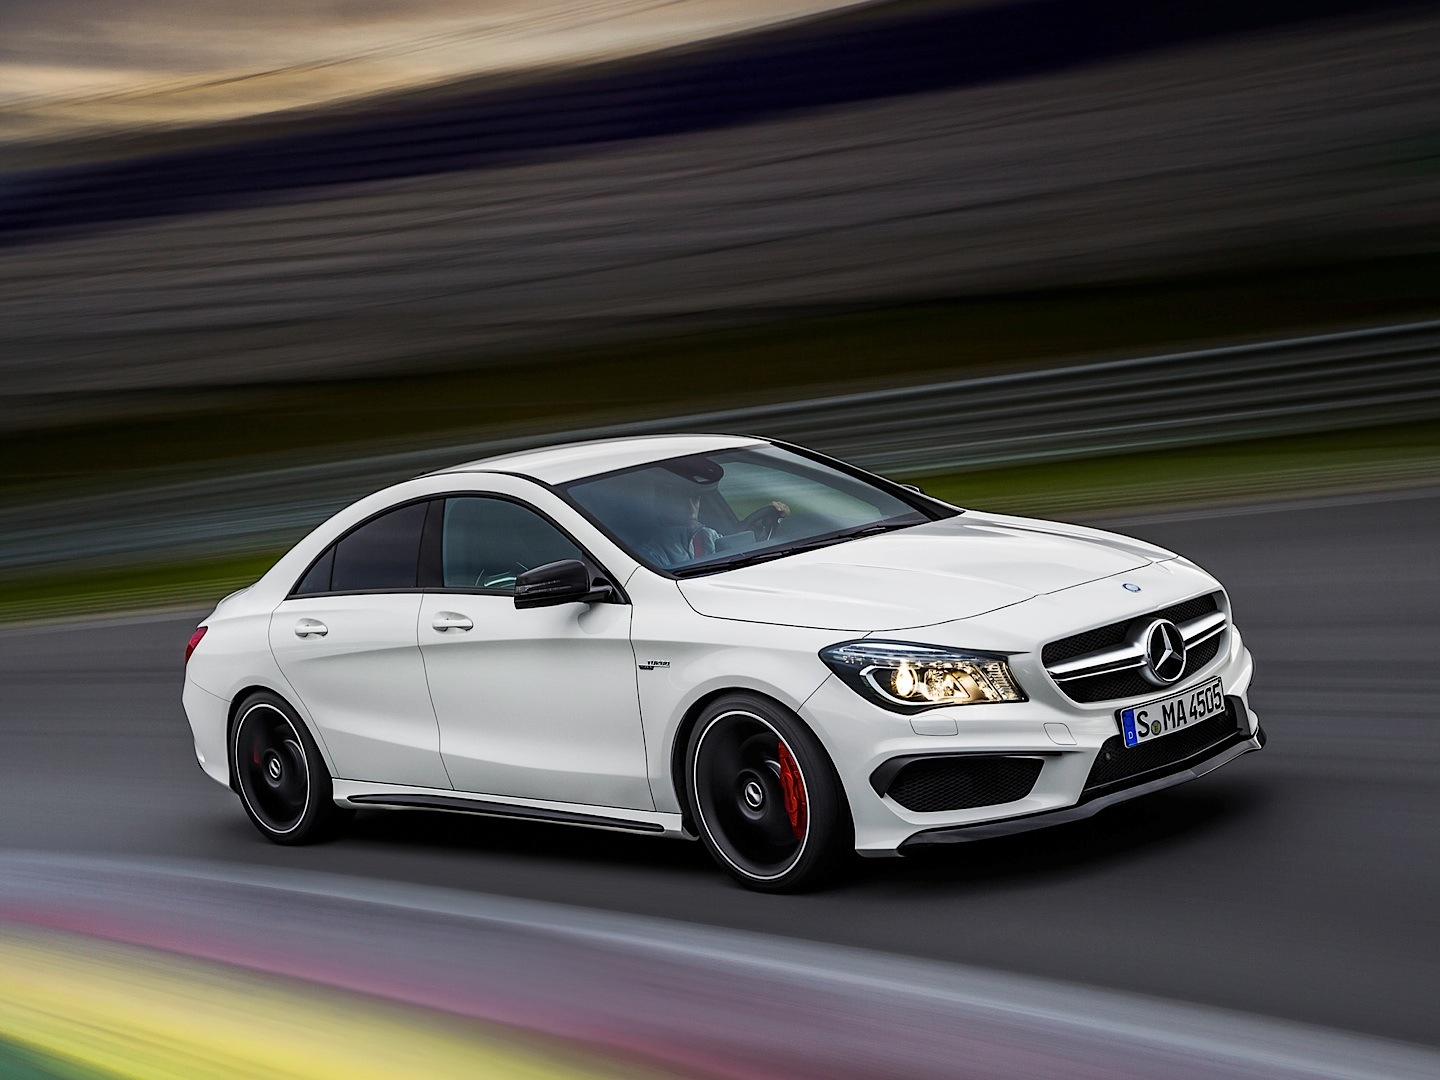 Mercedes benz cla 45 amg driven by vadimauto autoevolution for Mercedes benze cla